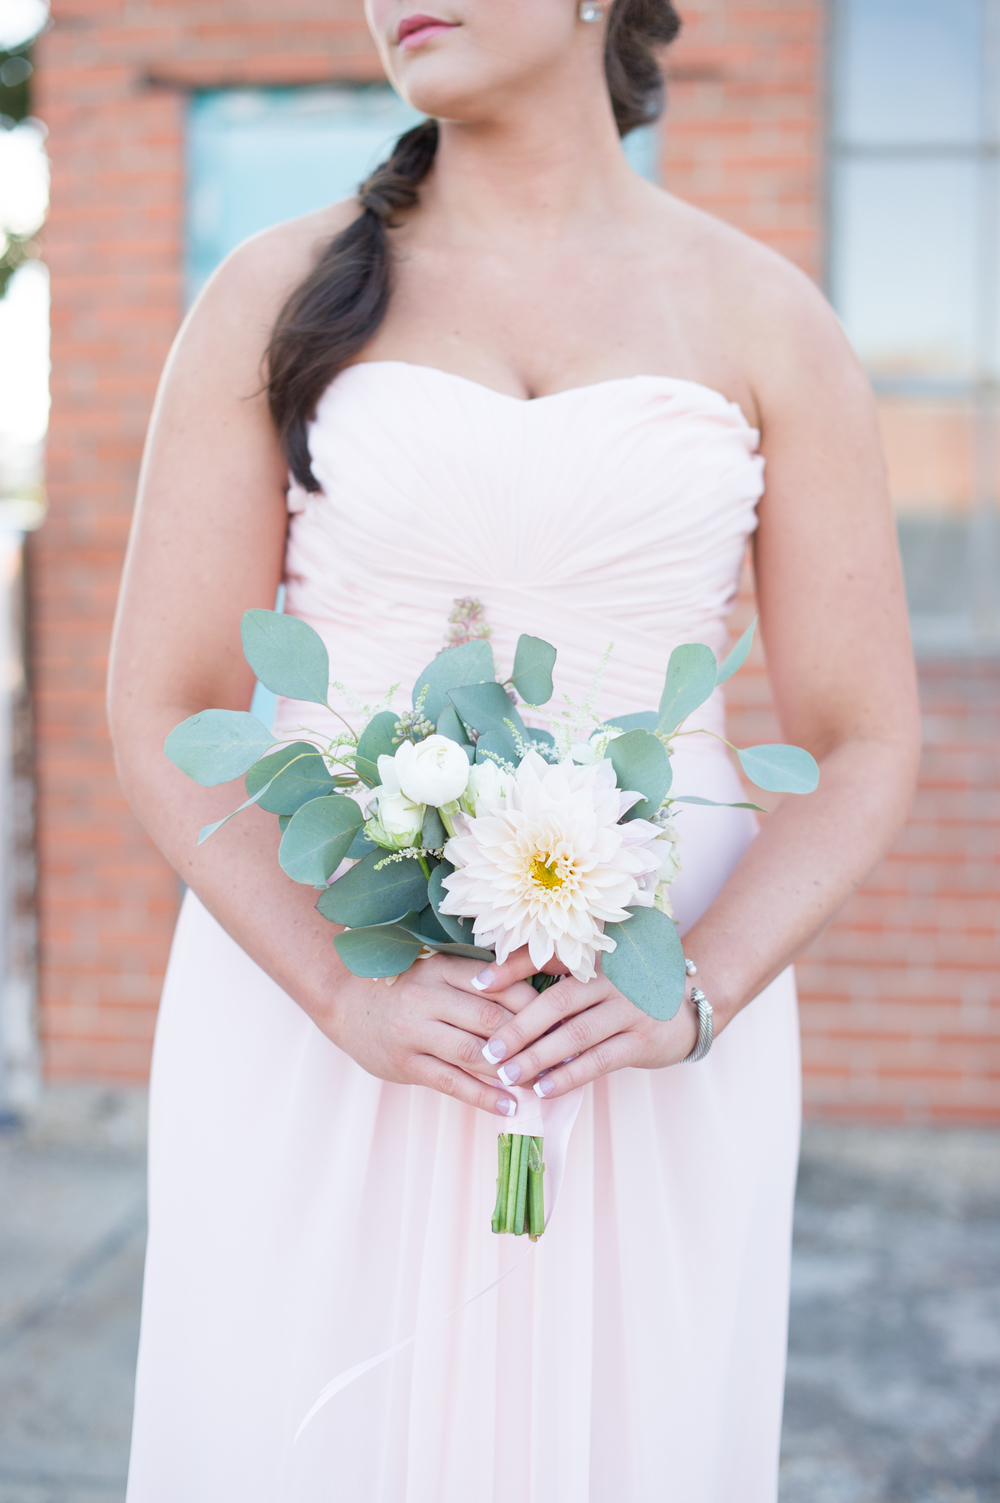 Pink Bridesmaid Organic Peach White Bouquet